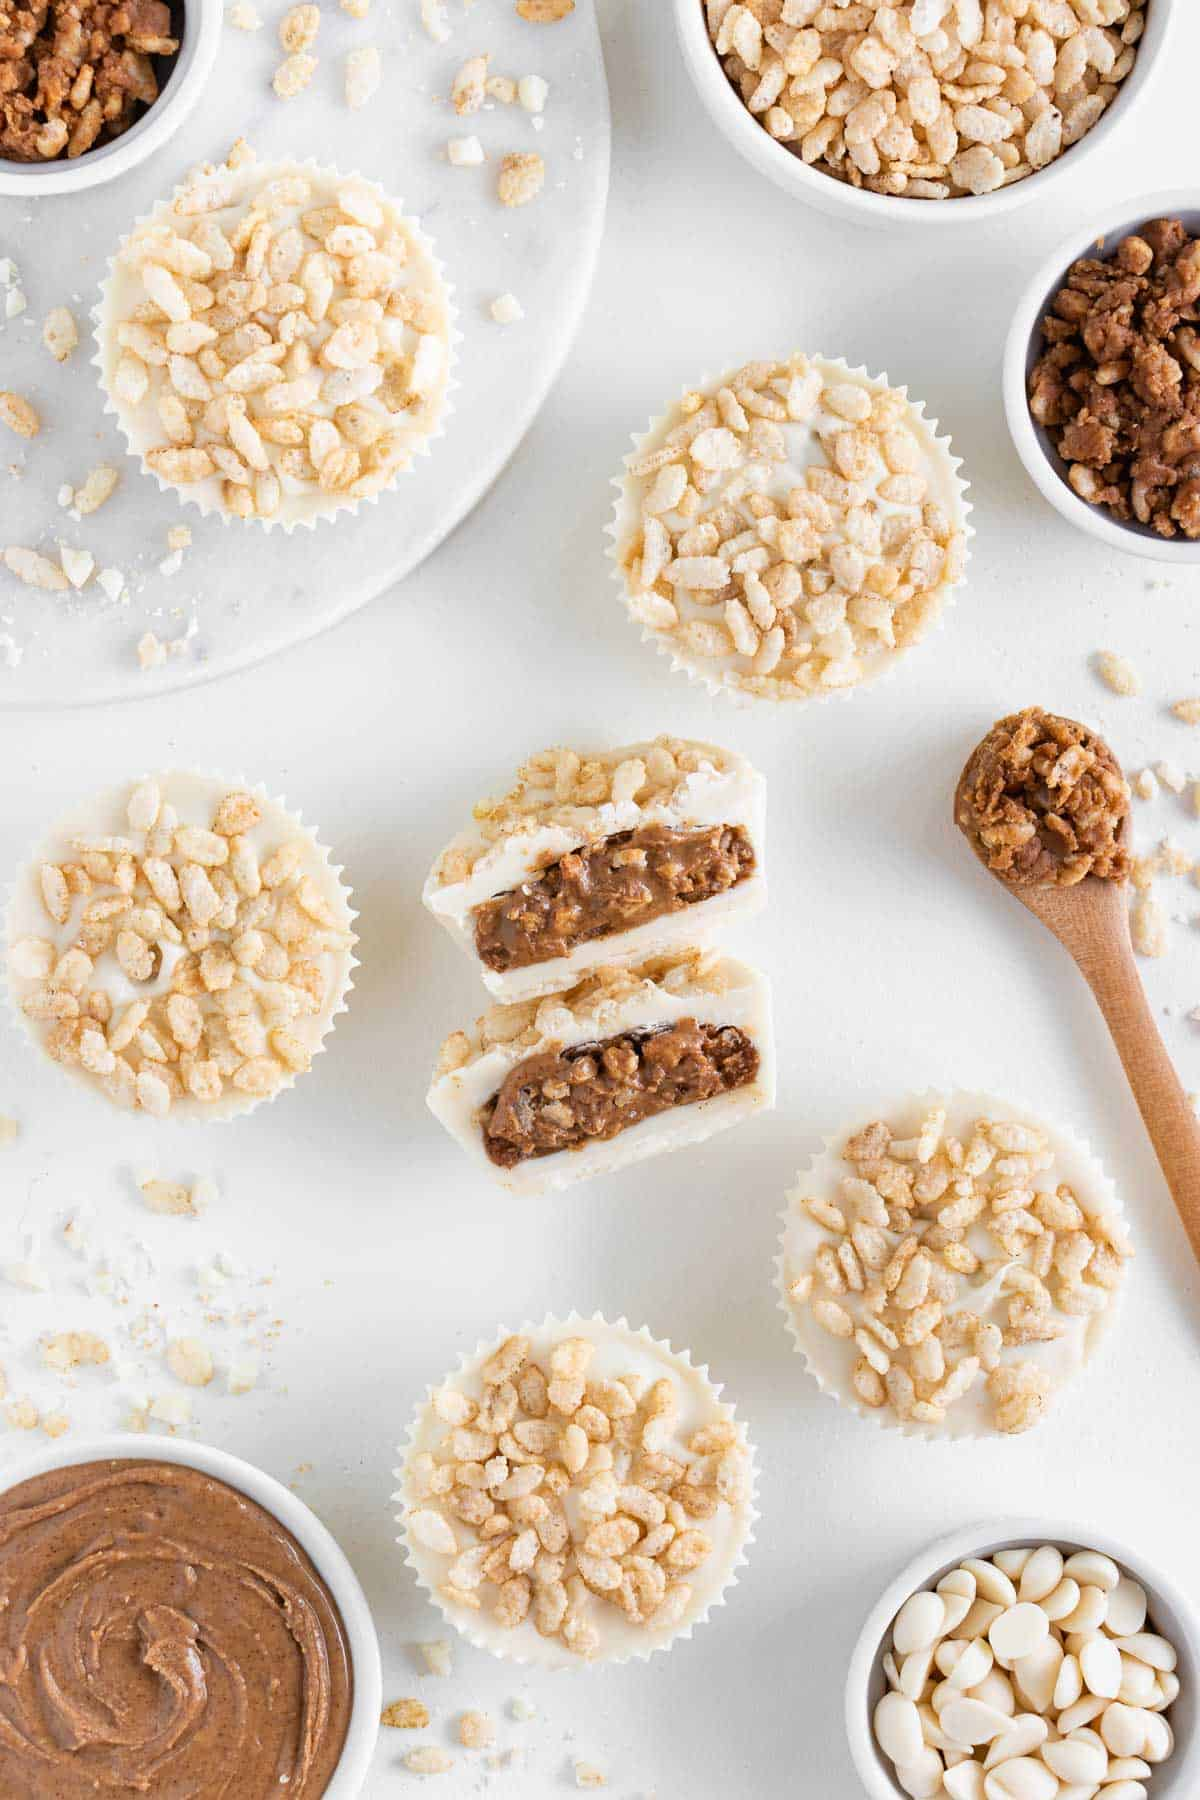 a crispy white chocolate almond butter cup cut in half surrounded by brown rice crisps cereal, chocolate chips, and nut butter